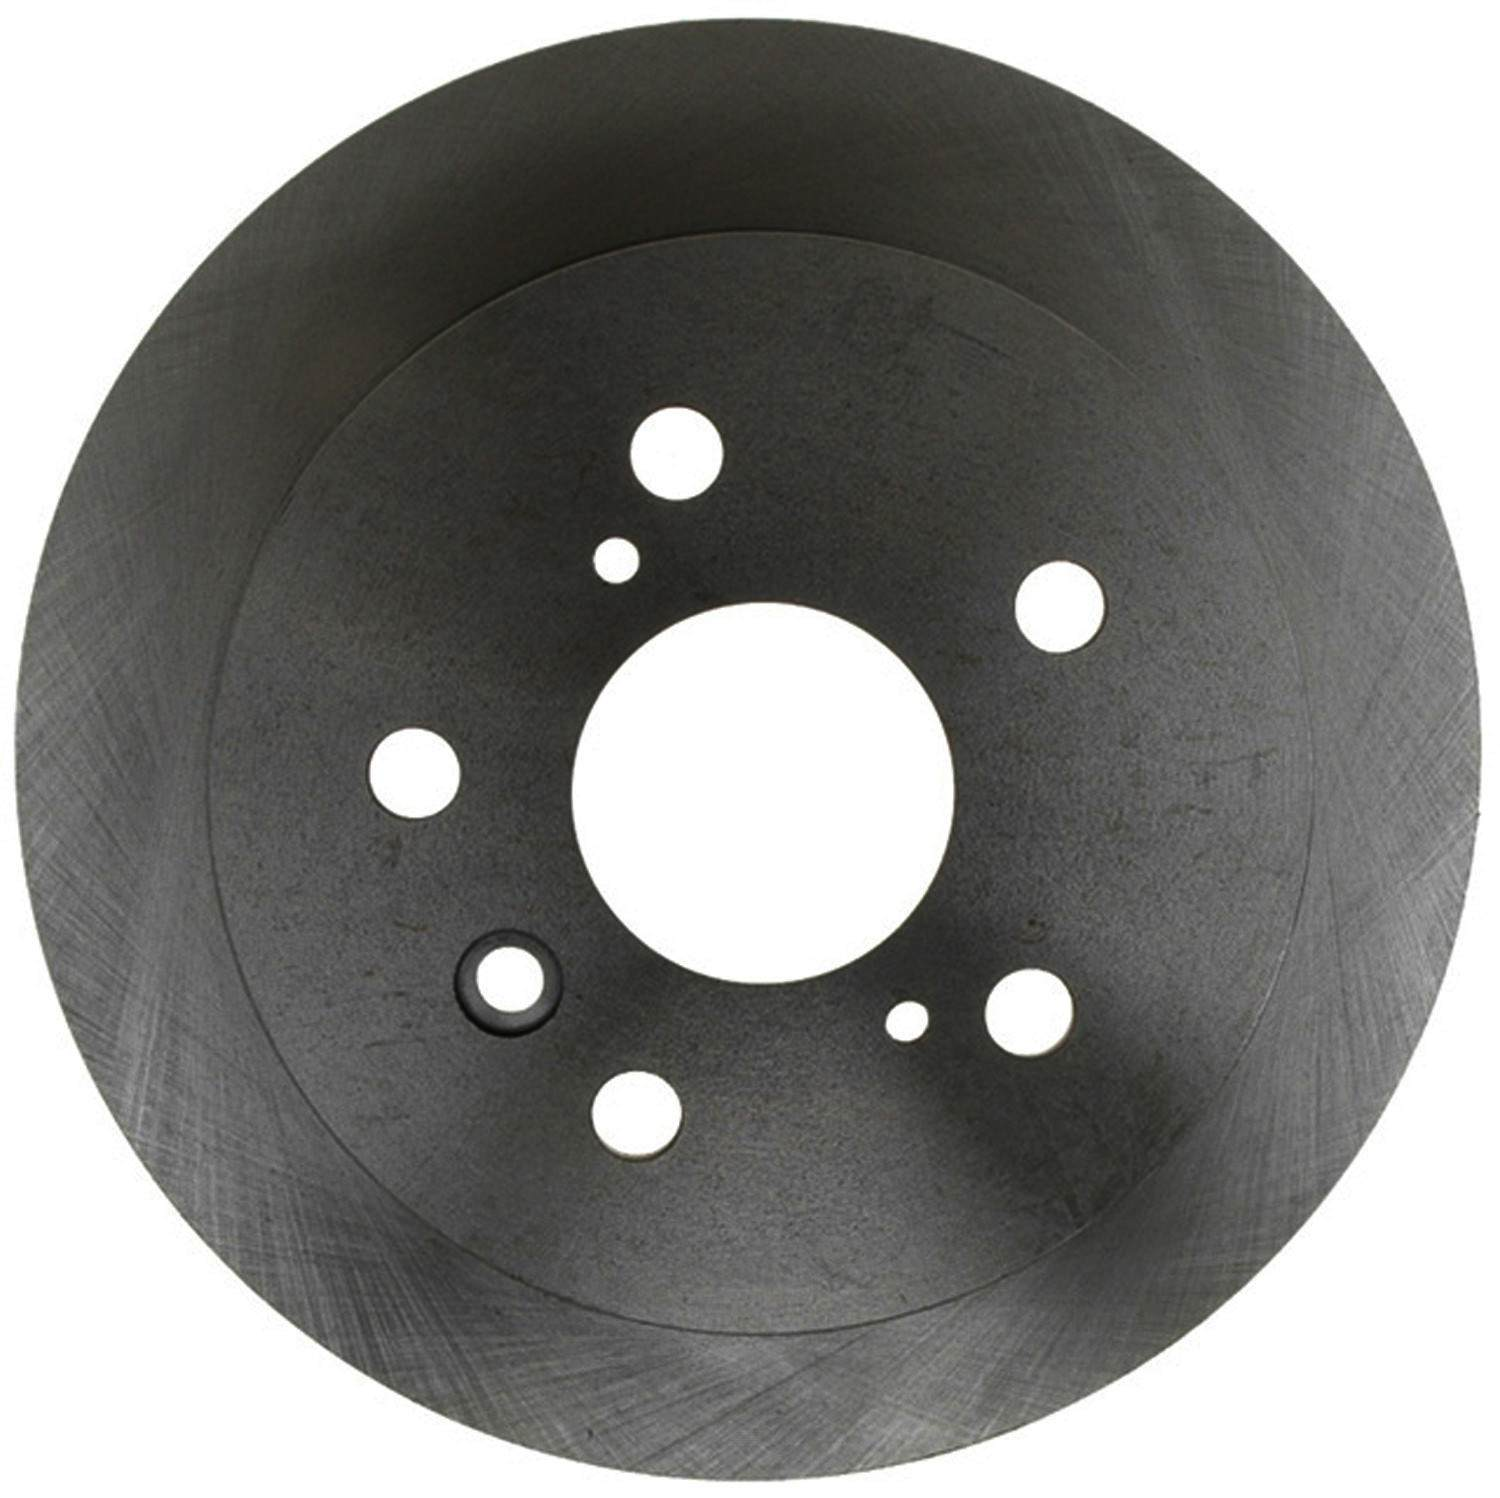 ACDELCO SILVER/ADVANTAGE - Disc Brake Rotor (Rear) - DCD 18A1604A